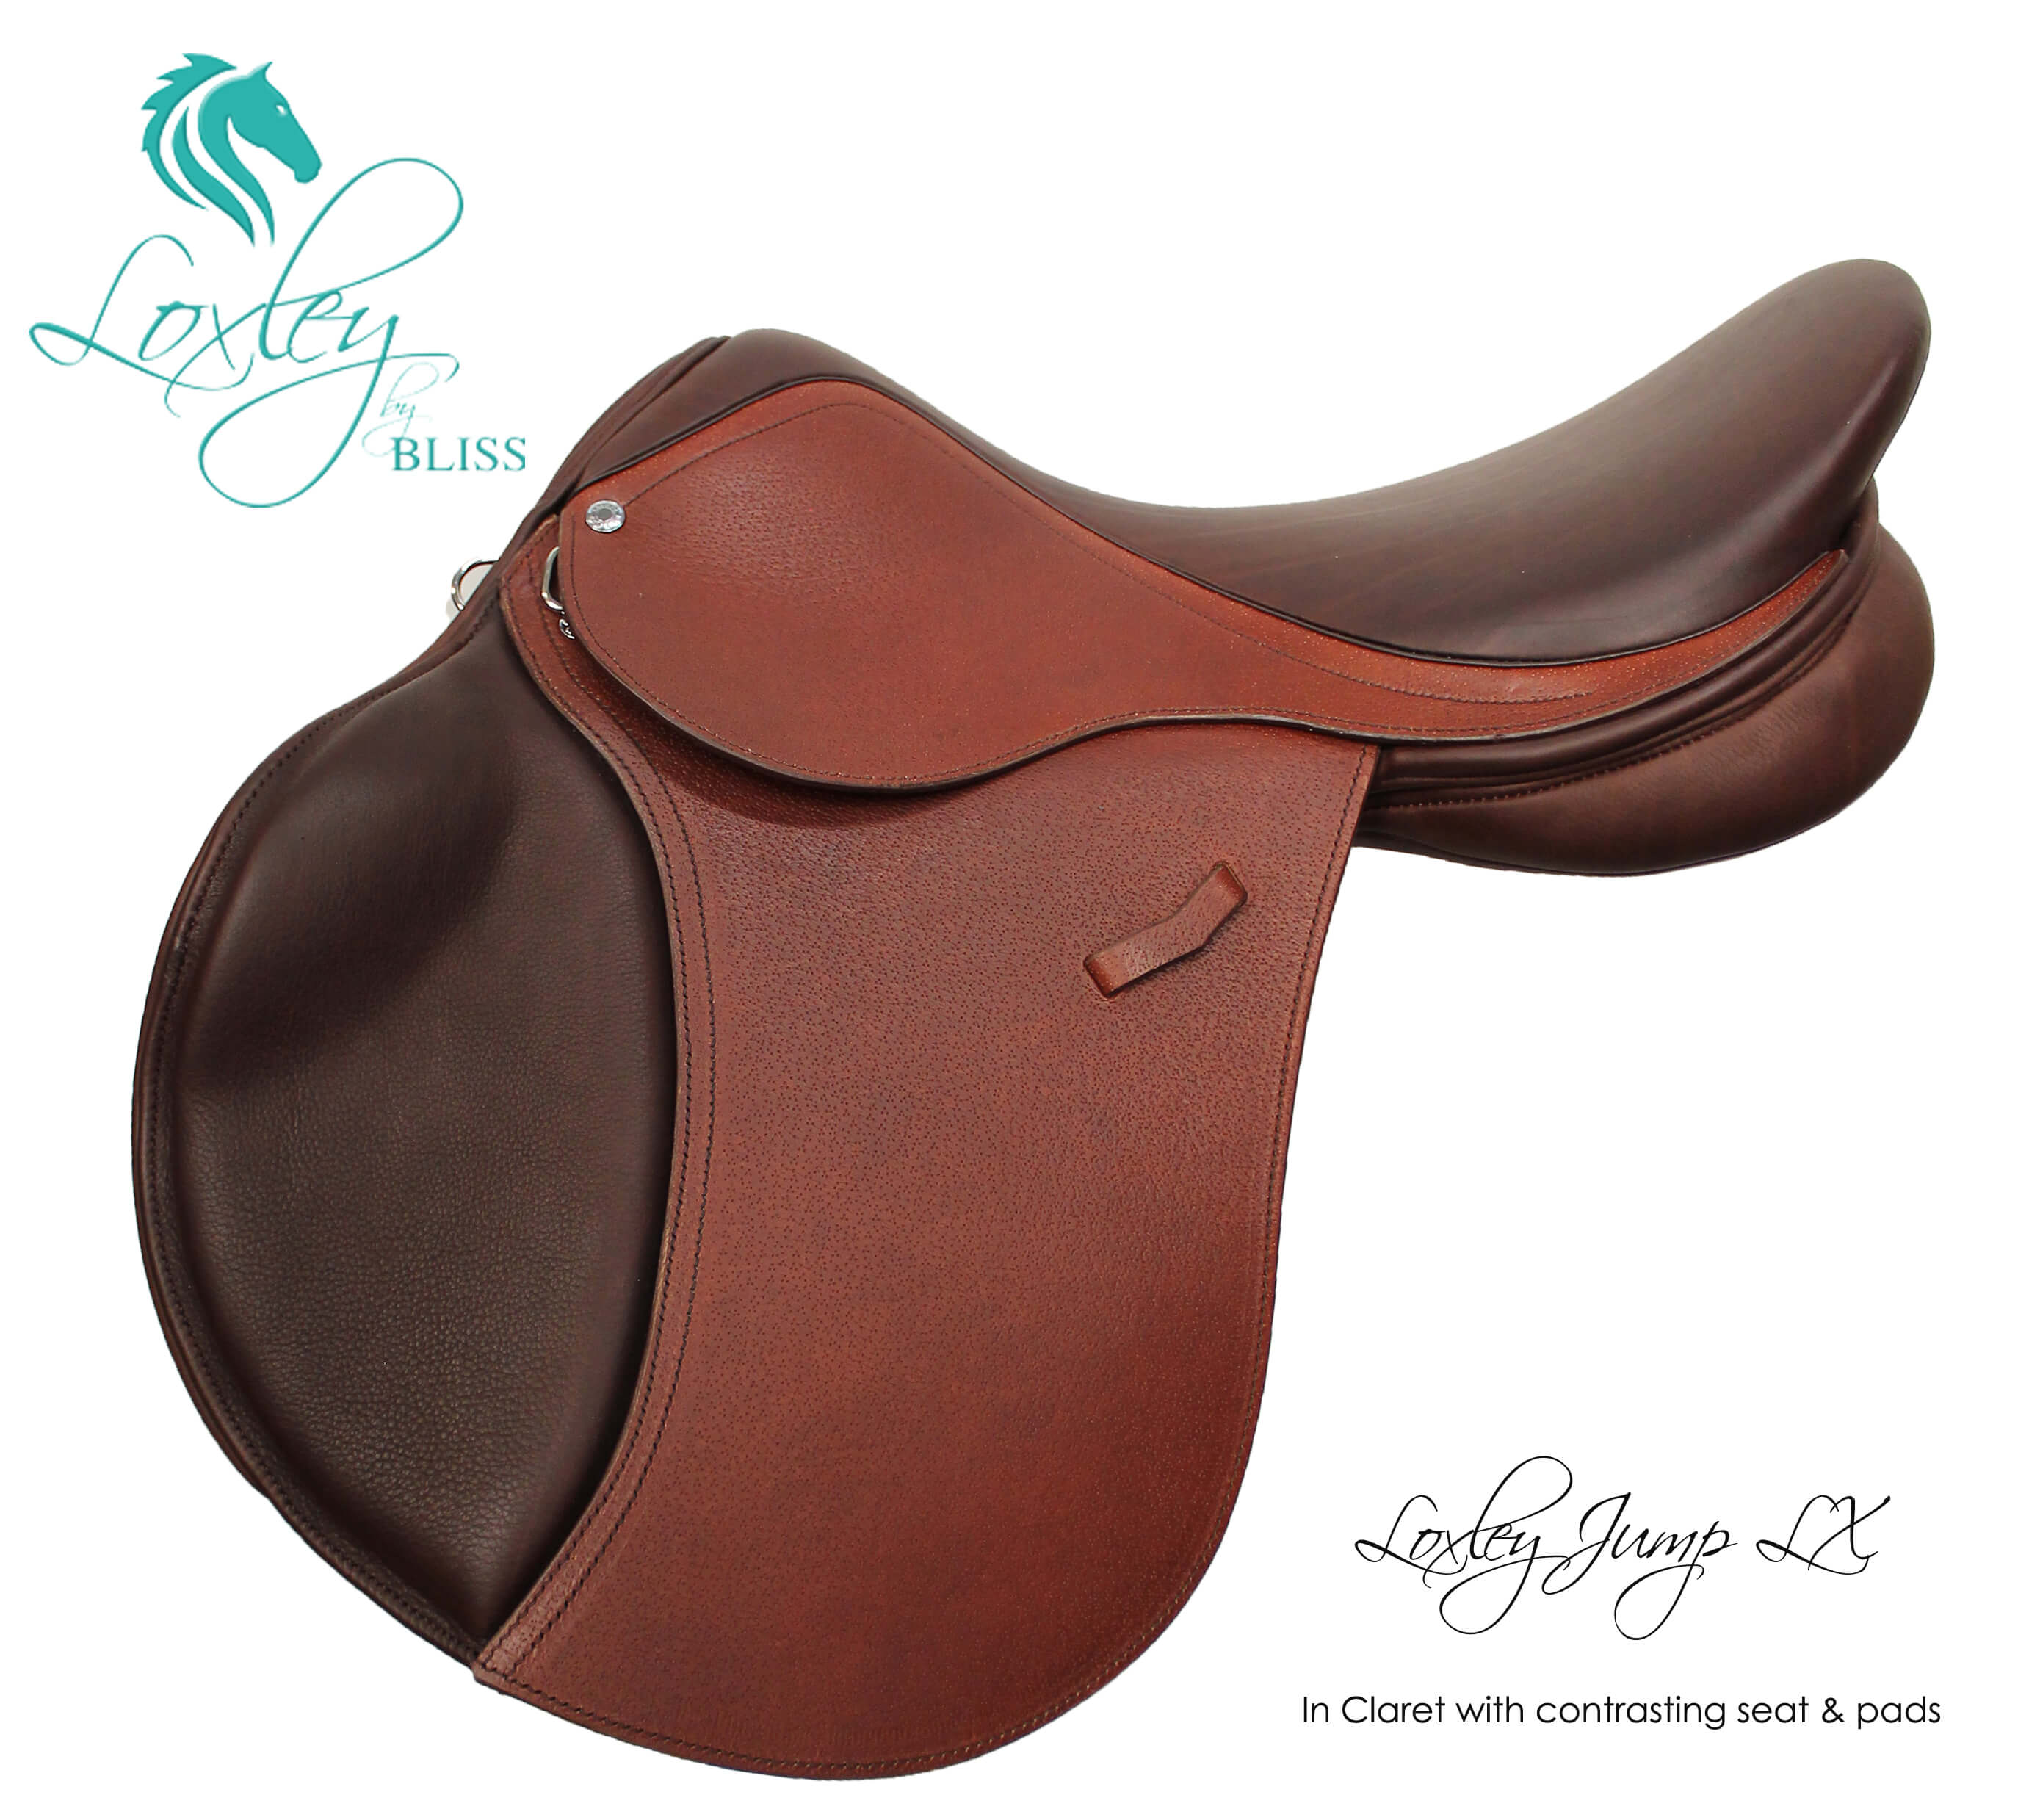 Loxley Jump LX Claret & Cocoa